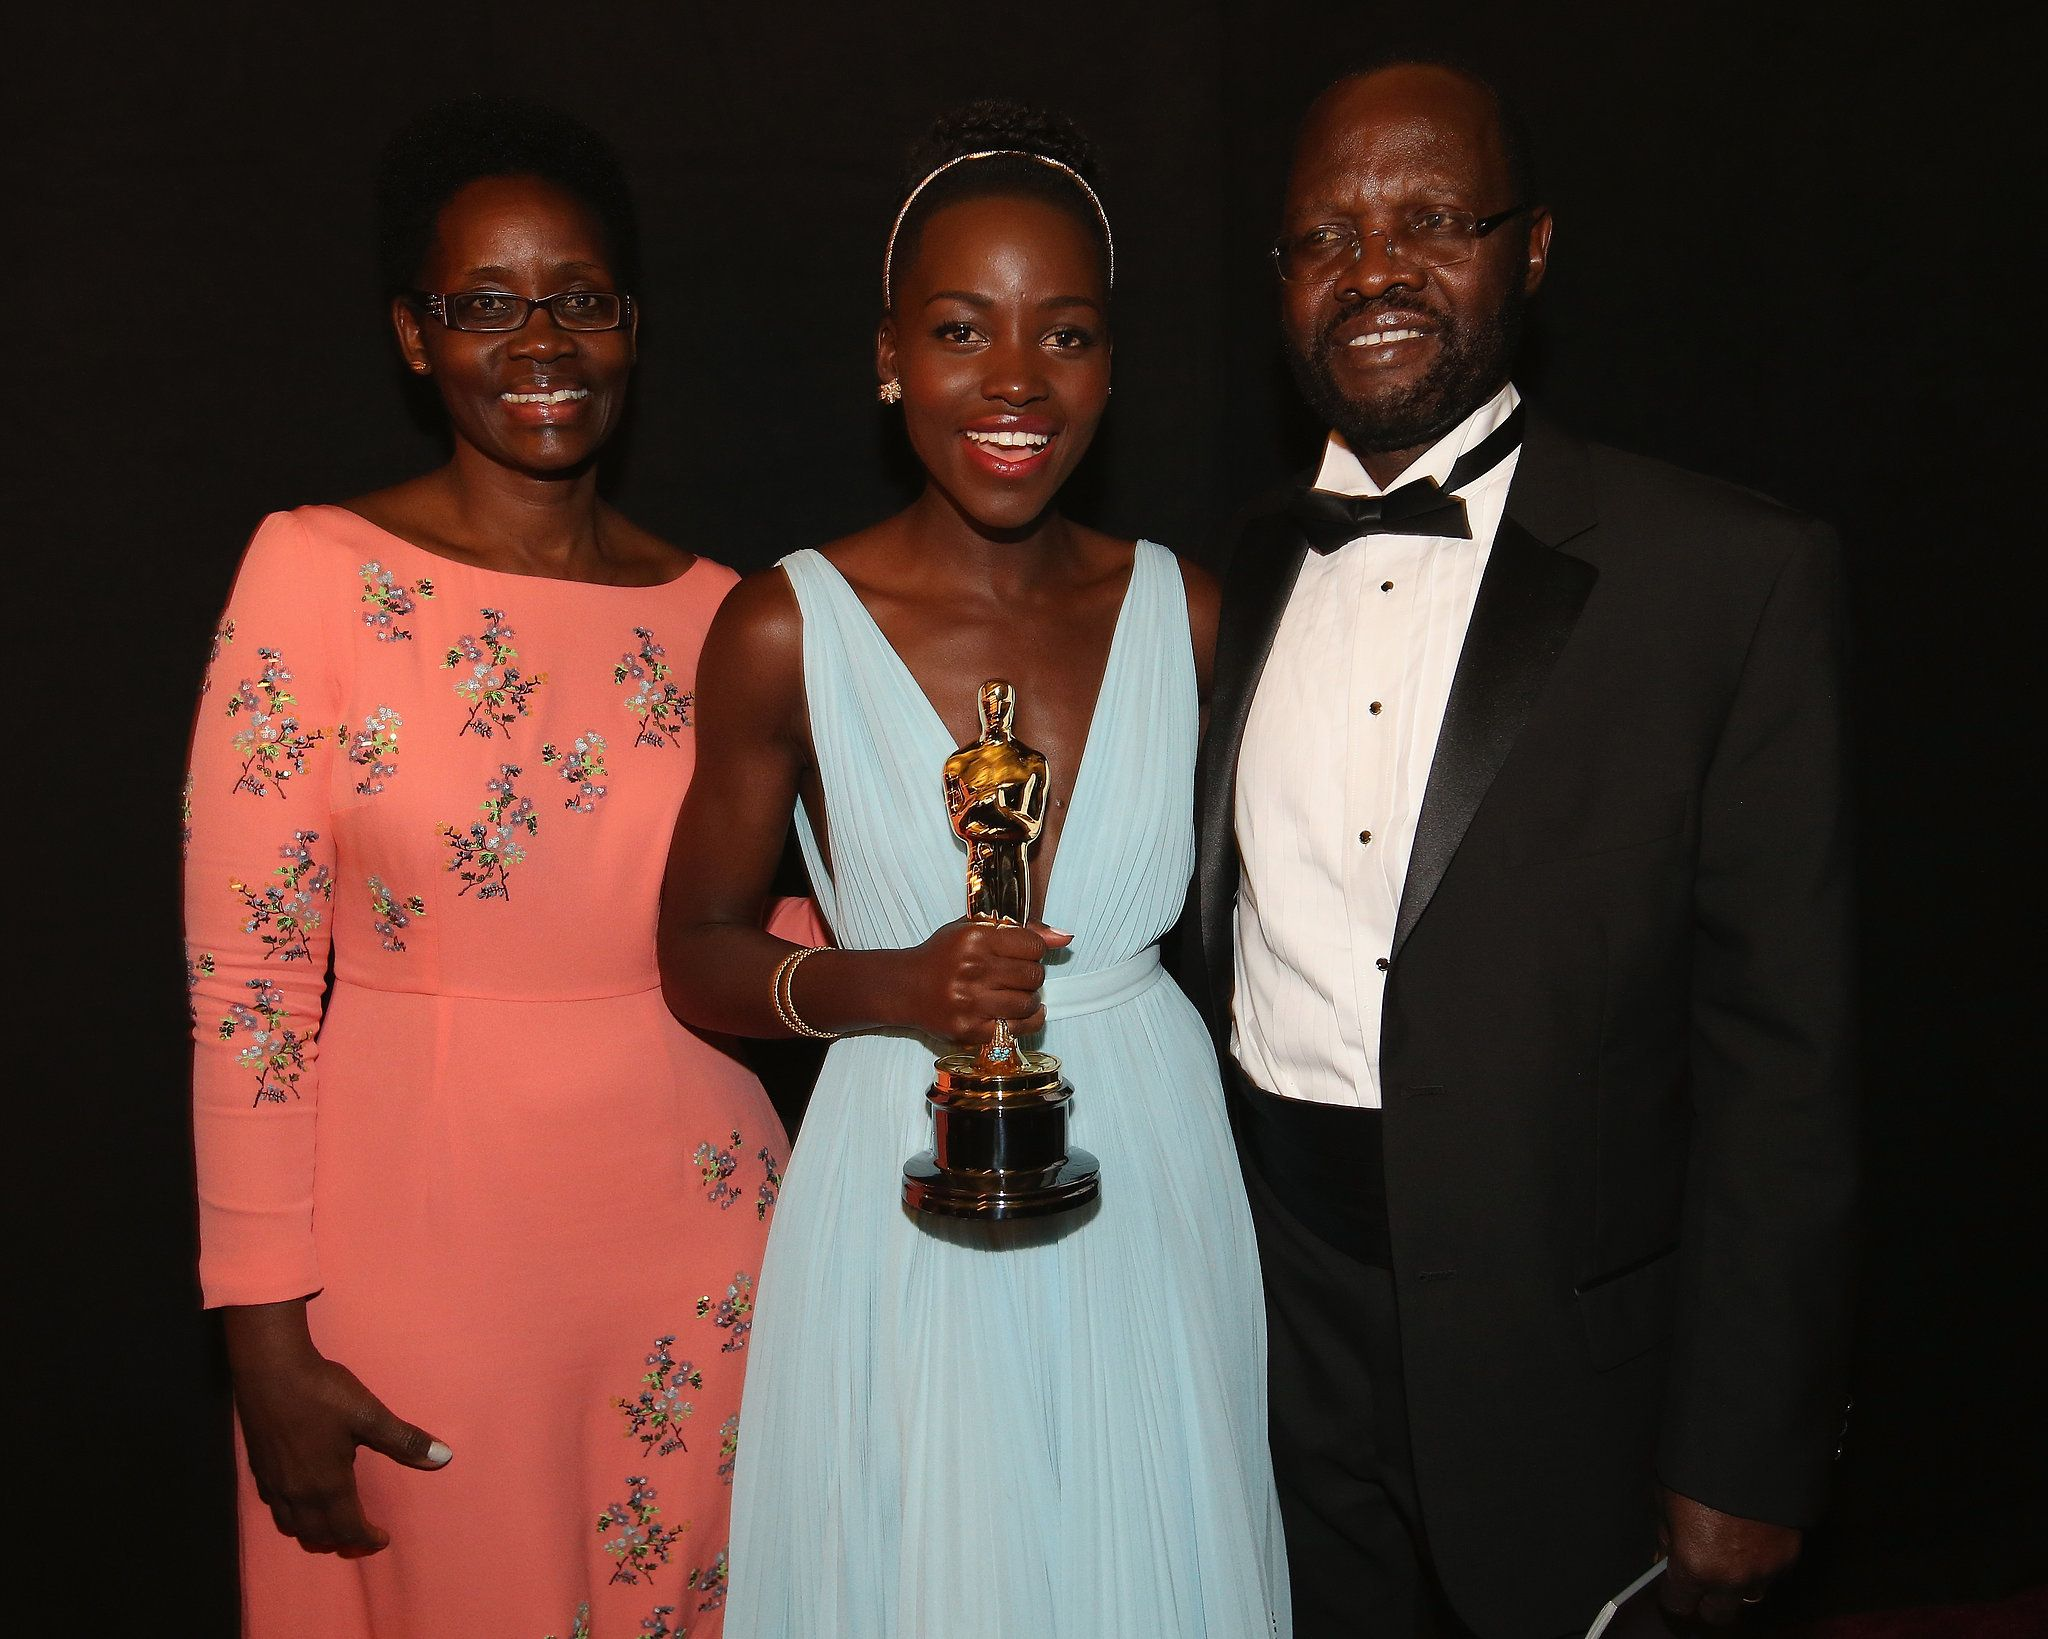 Lupita nyong o celebrated her best supporting actress oscar win with her proud parents